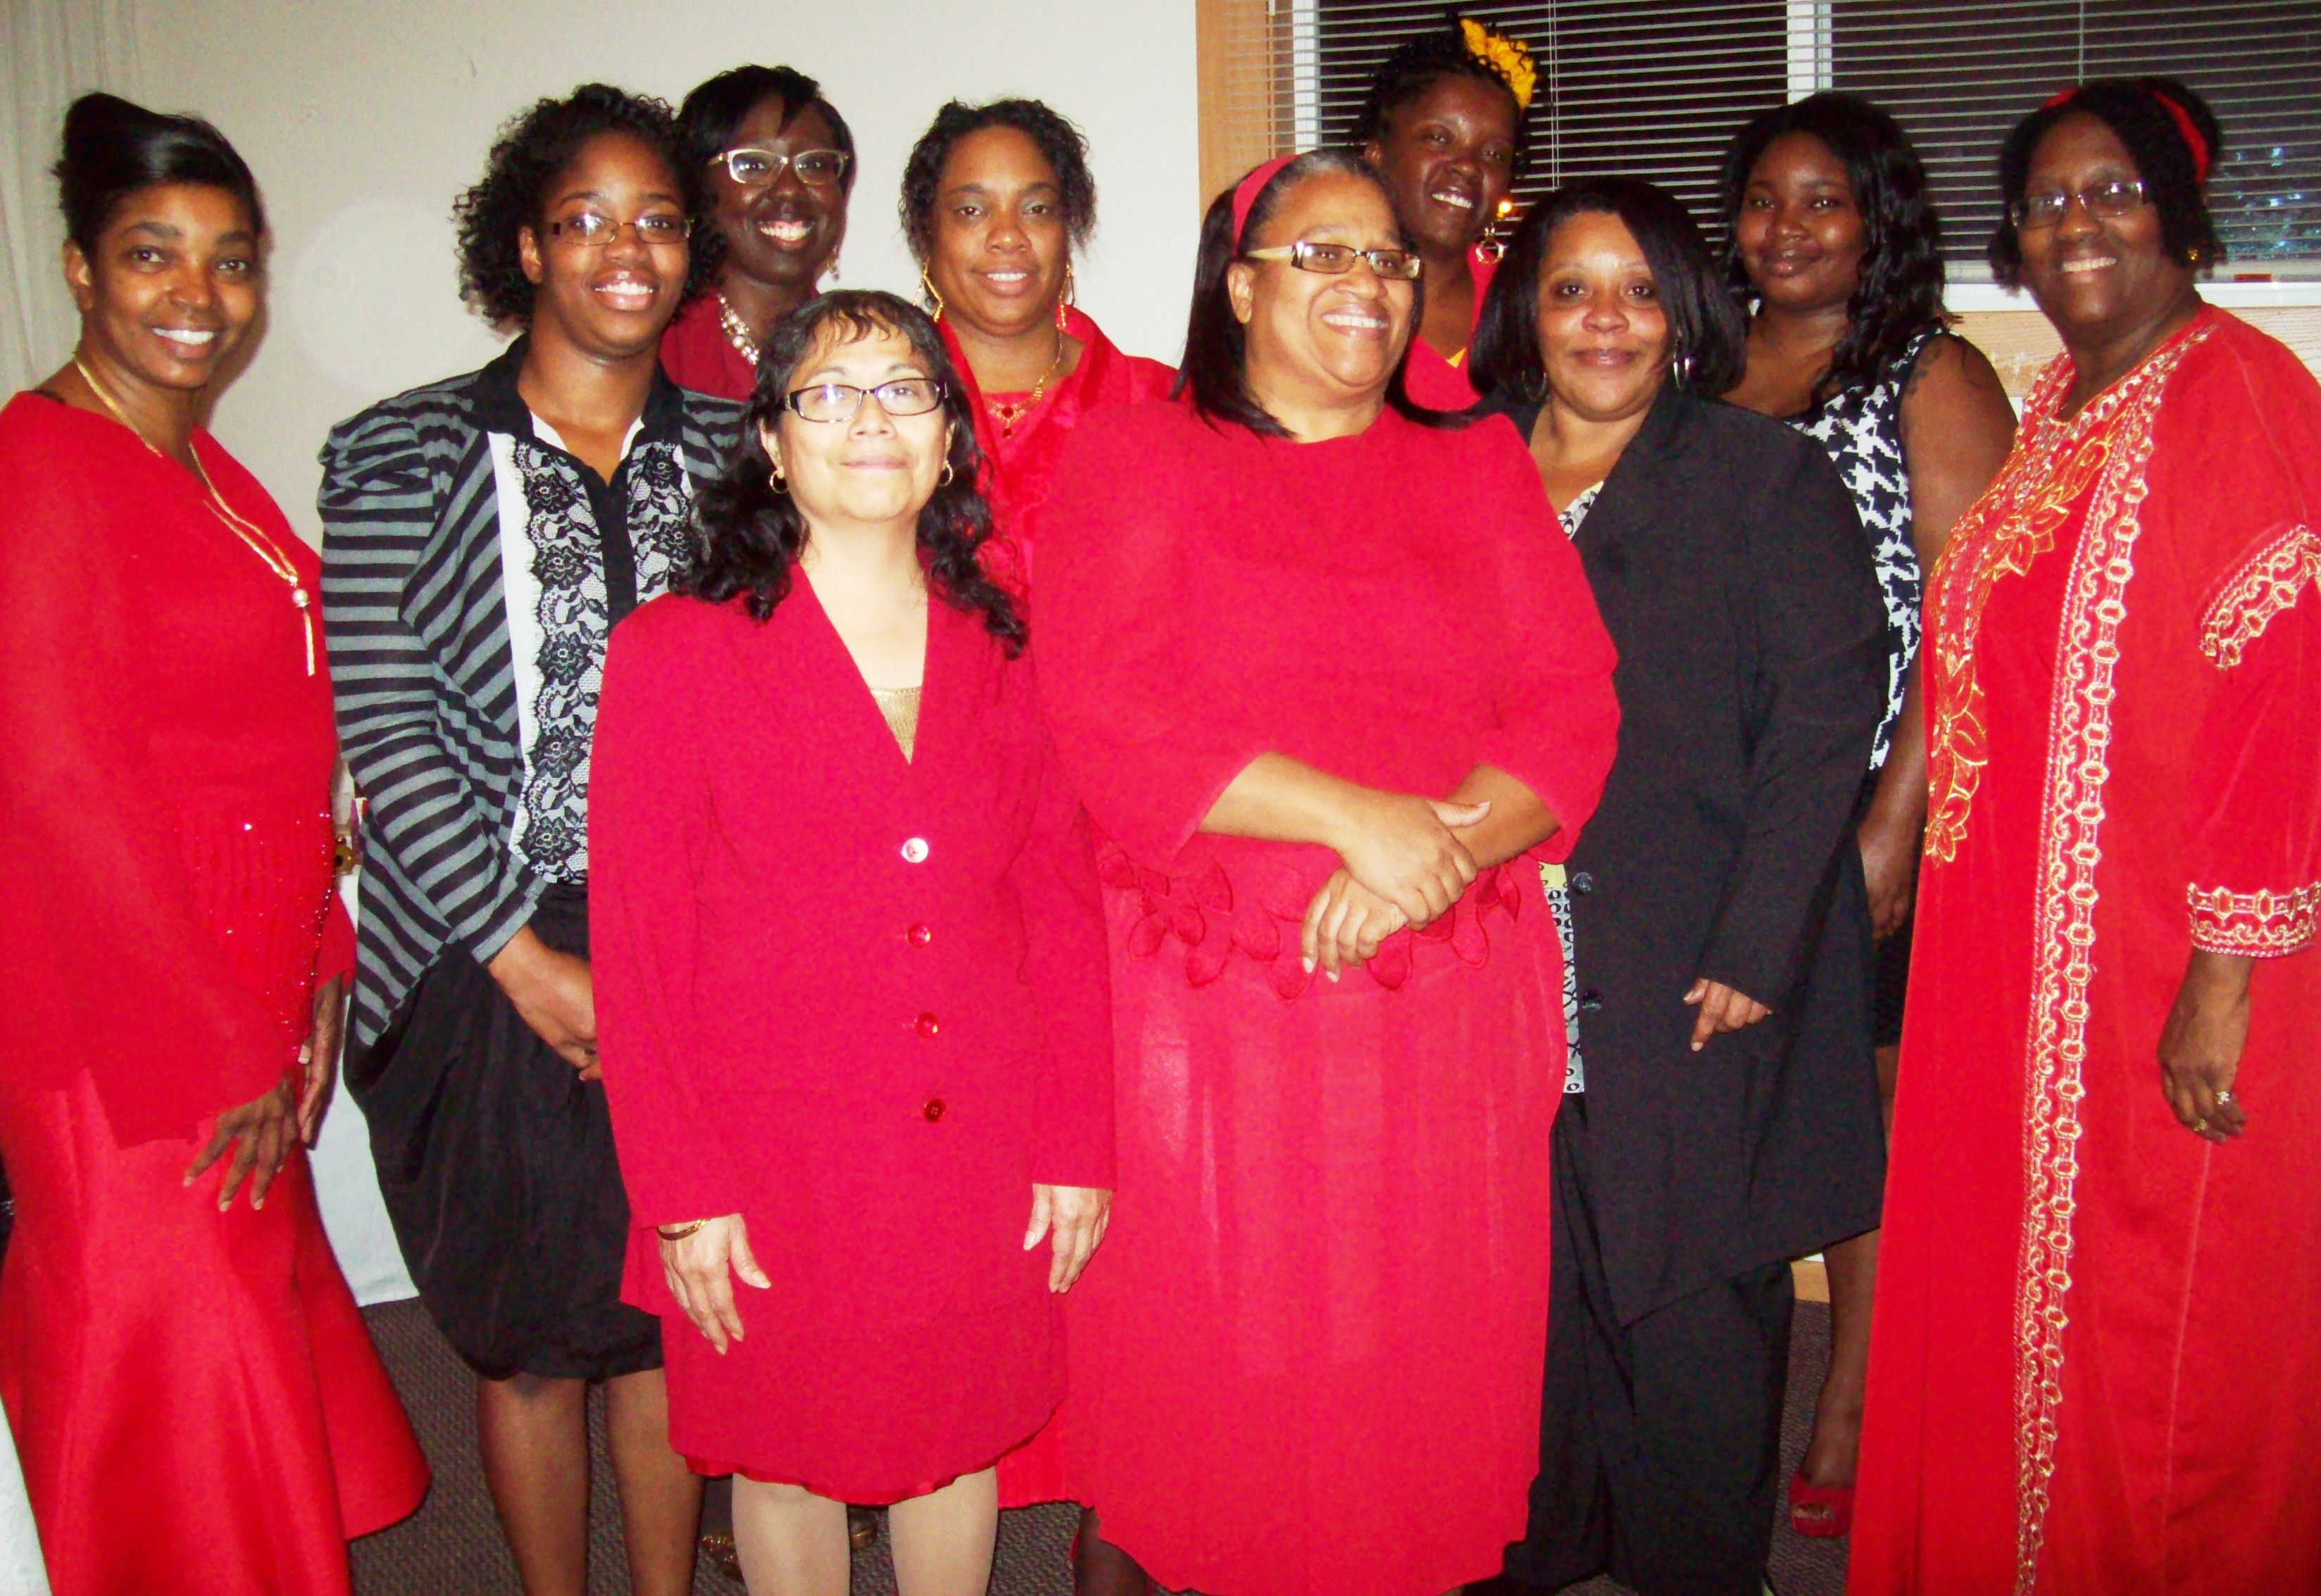 womeninredspringconvocation2014_100_1277.jpg